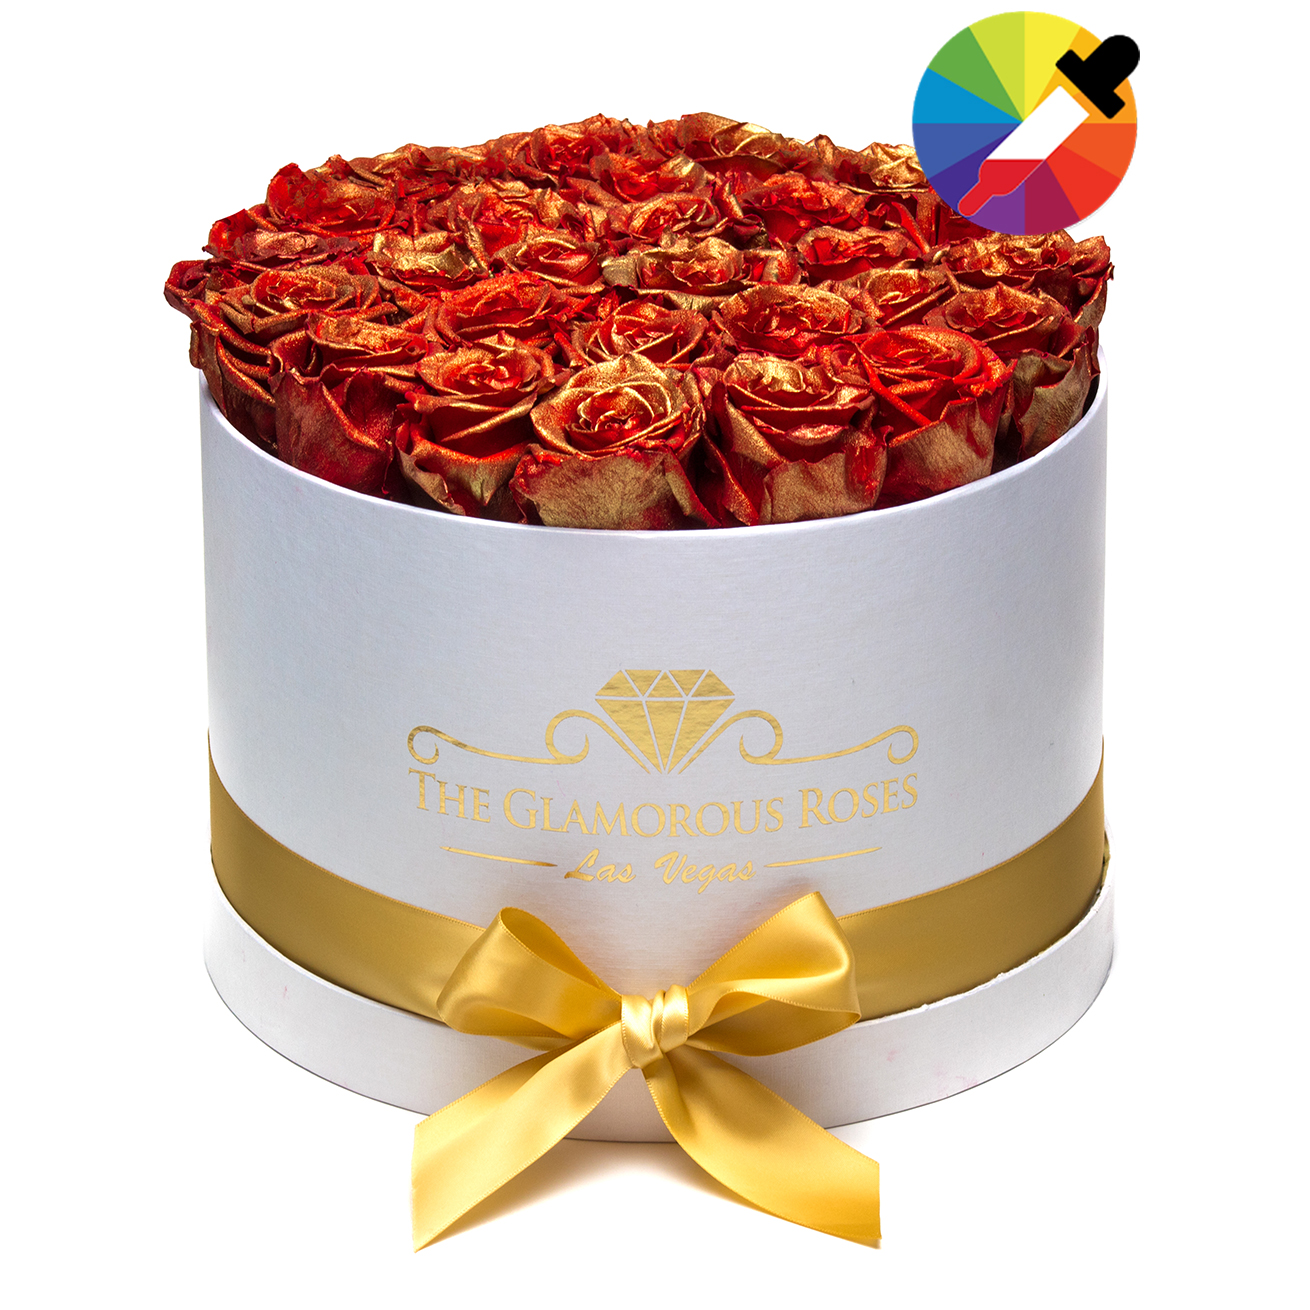 Customize your own Large Round Box - The Glamorous Roses